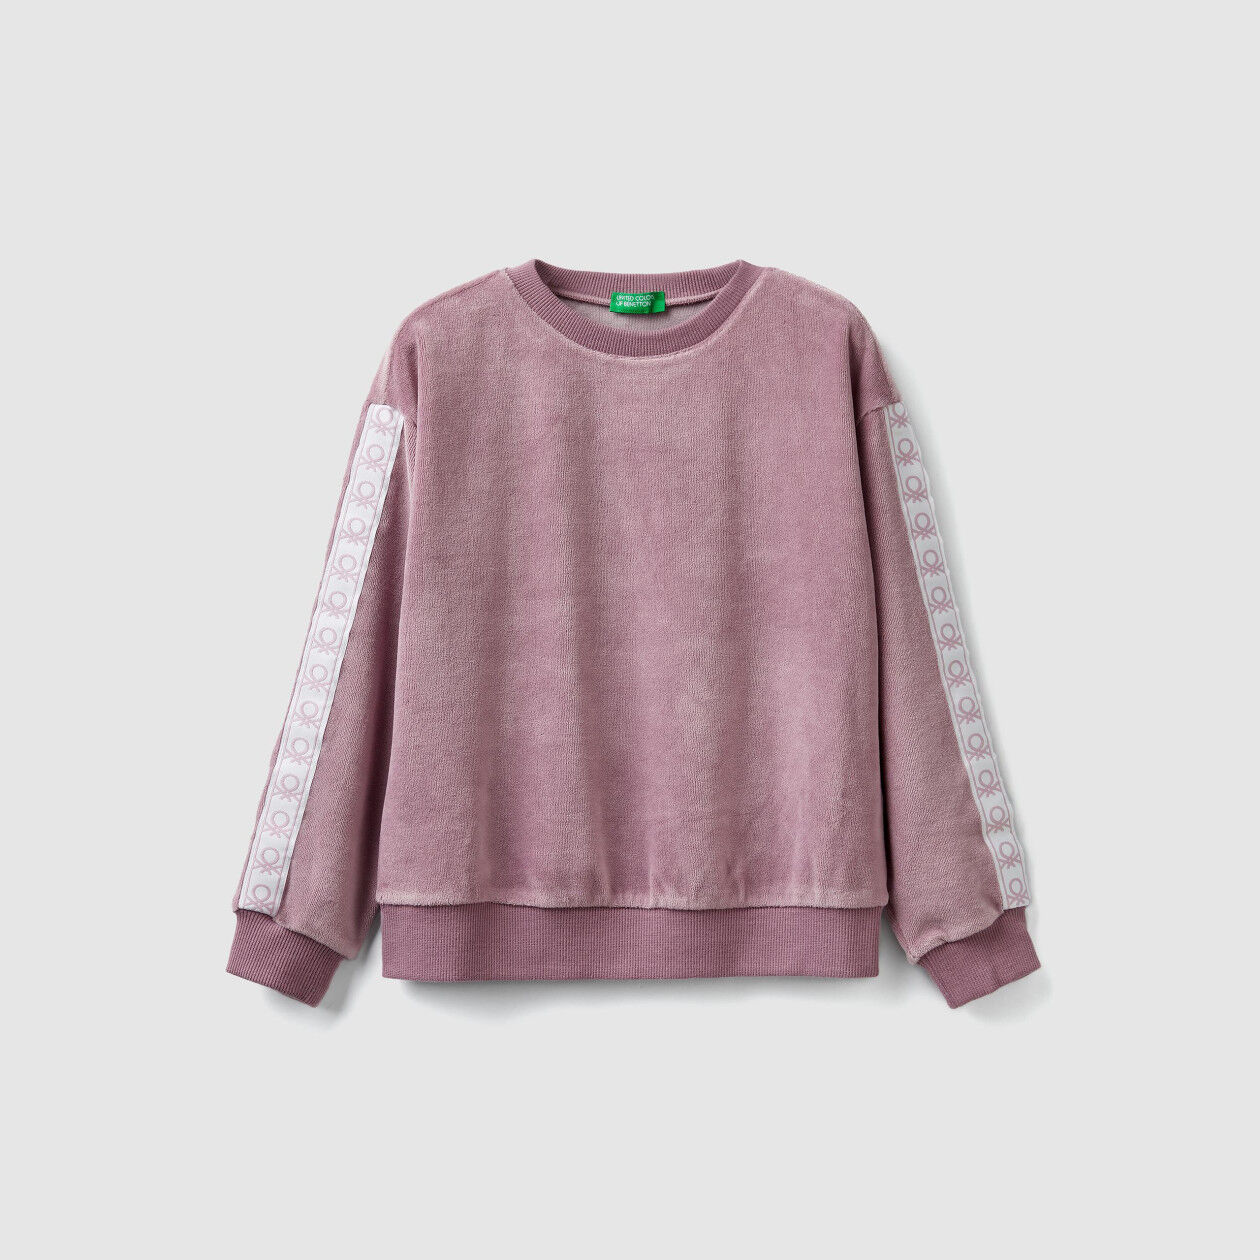 Chenille sweatshirt with bands